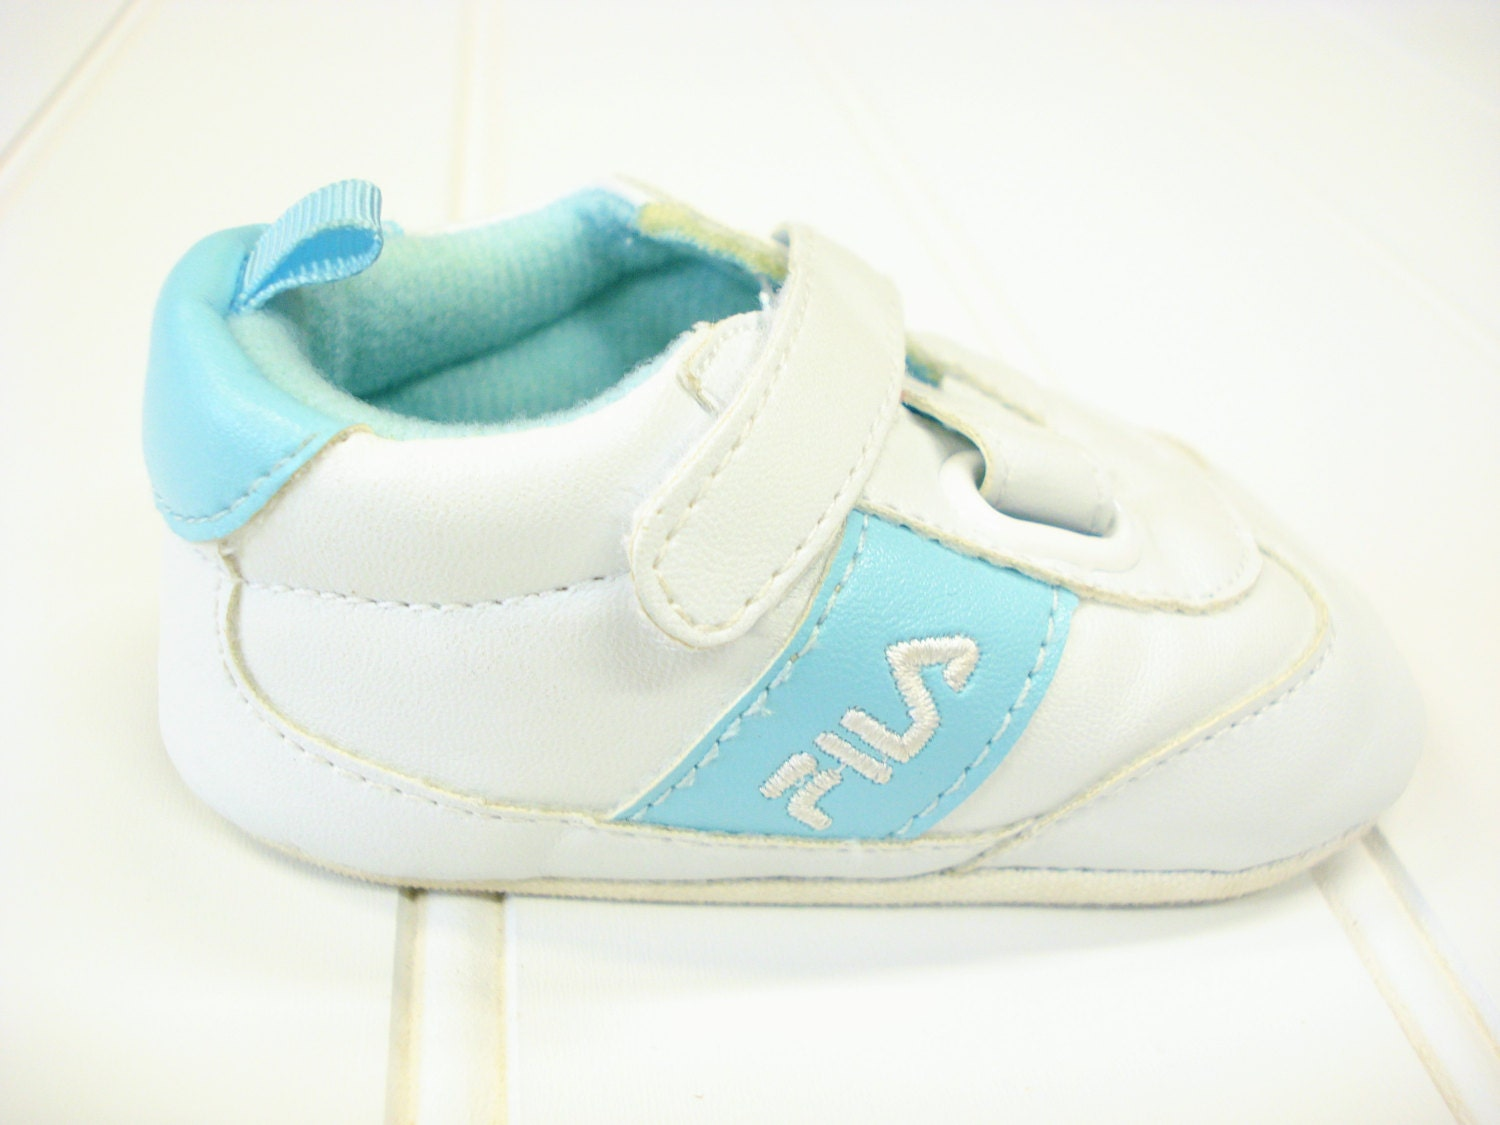 vintage baby shoes baby athletic shoes white tennis shies by